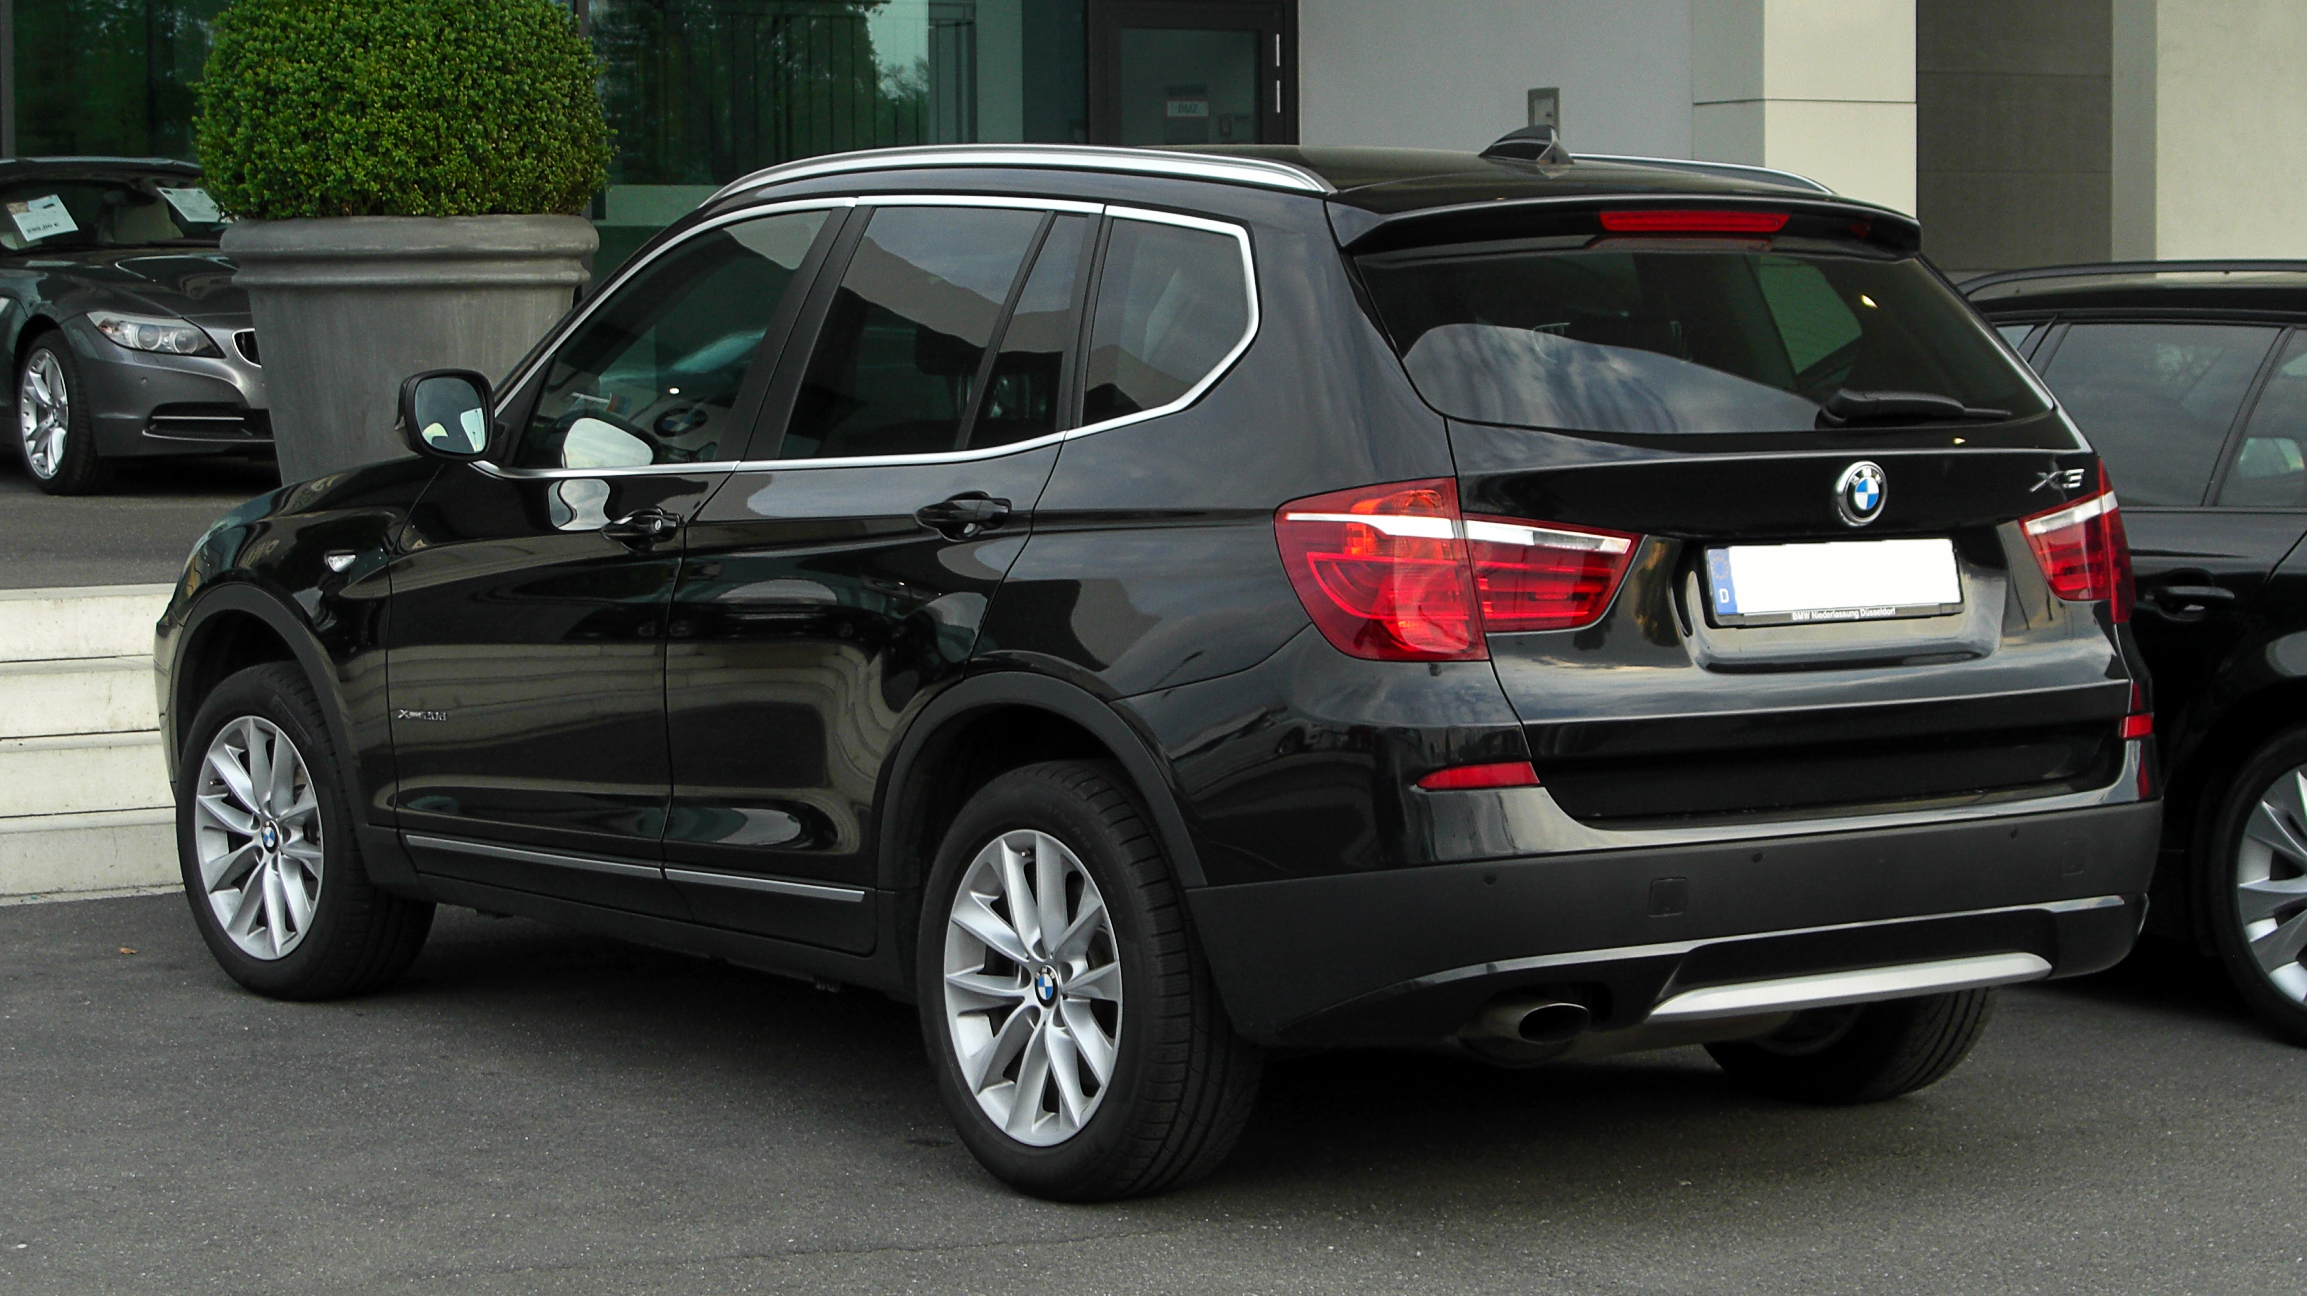 datei bmw x3 xdrive20d f25 heckansicht 16 april 2011 d wikipedia. Black Bedroom Furniture Sets. Home Design Ideas